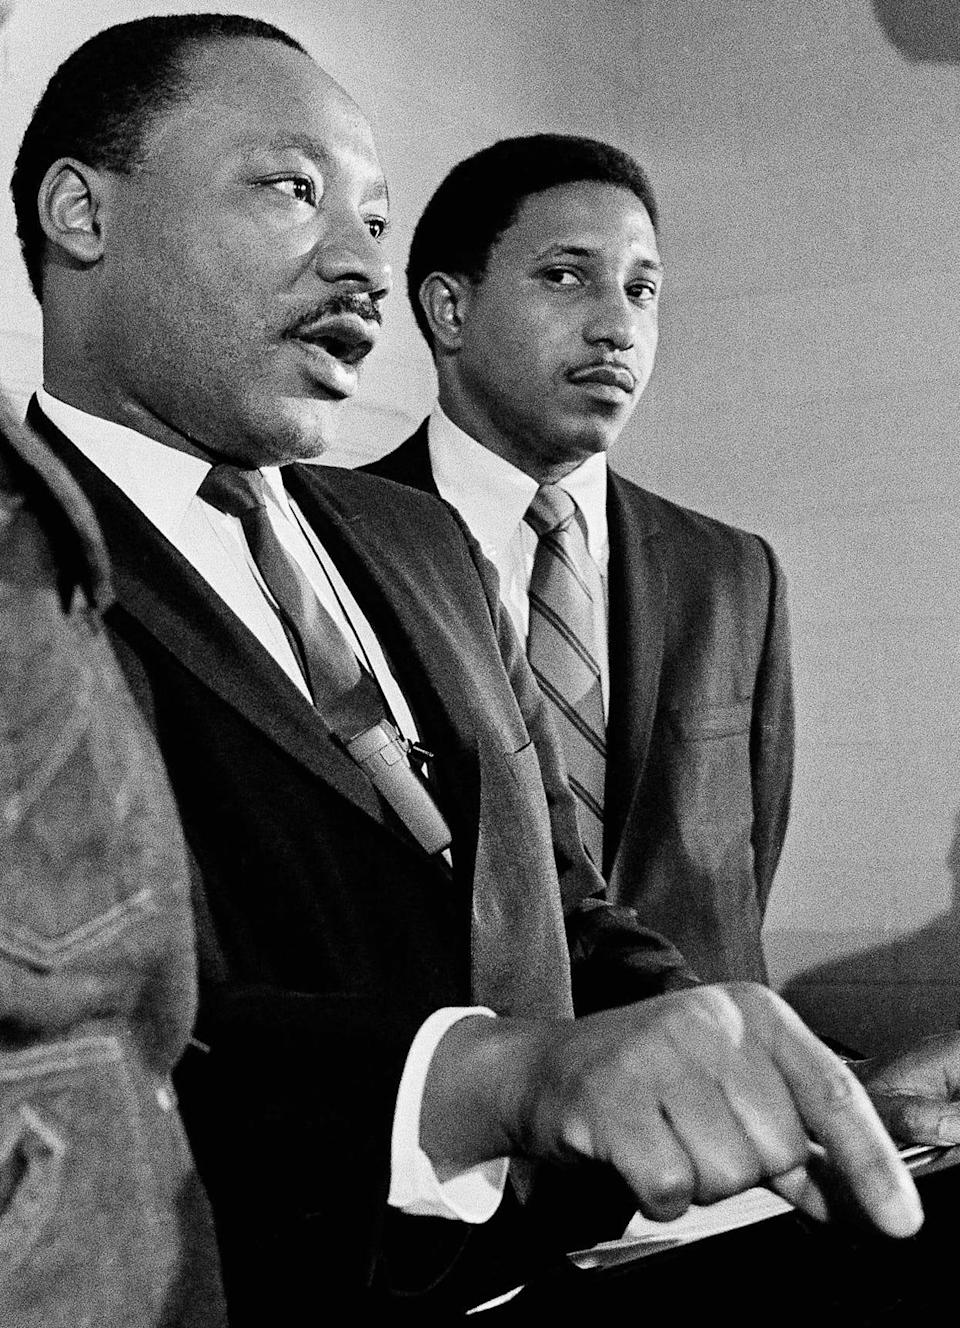 In this Tuesday, Jan. 16, 1968 file photo, Martin Luther King Jr., accompanied by the Rev. Bernard Lafayette, talks about a planned march on Washington, during a news conference in Atlanta.